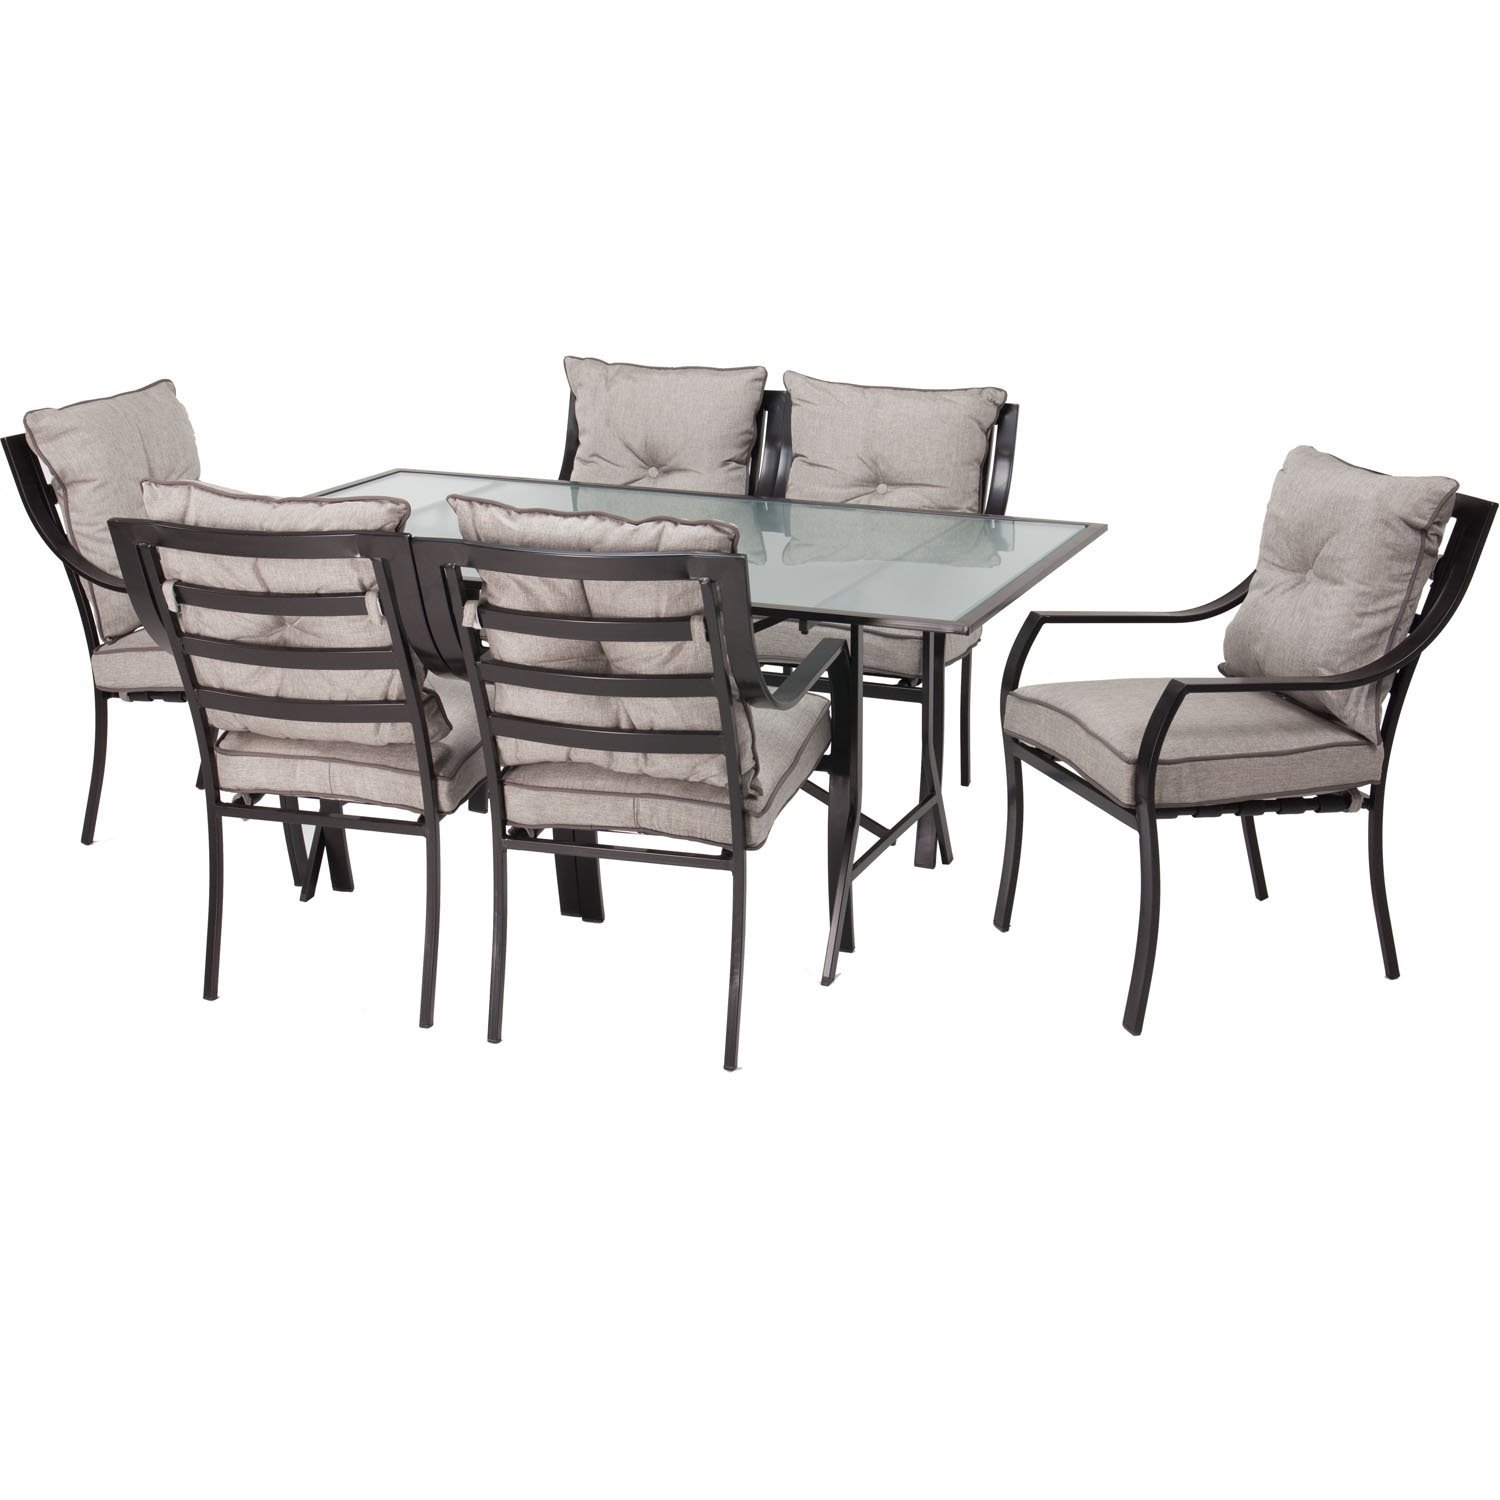 7 Piece Outdoor Patio Furniture Metal Dining Set With